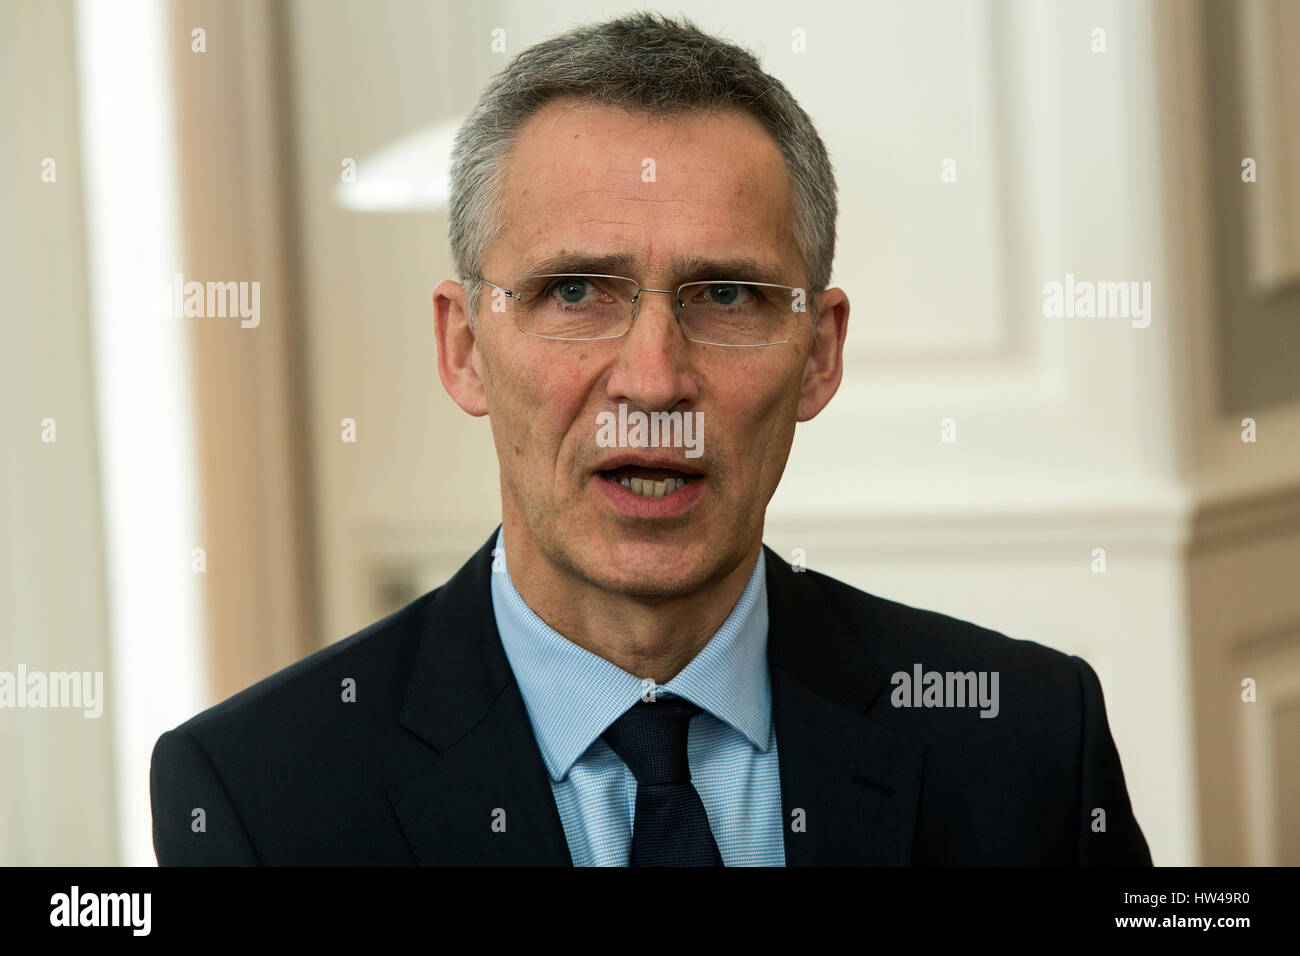 NATO Secretary General Jens Stoltenberg during a press conference with Danish Prime Minister Lars Lokke Rasmussen - Stock Image